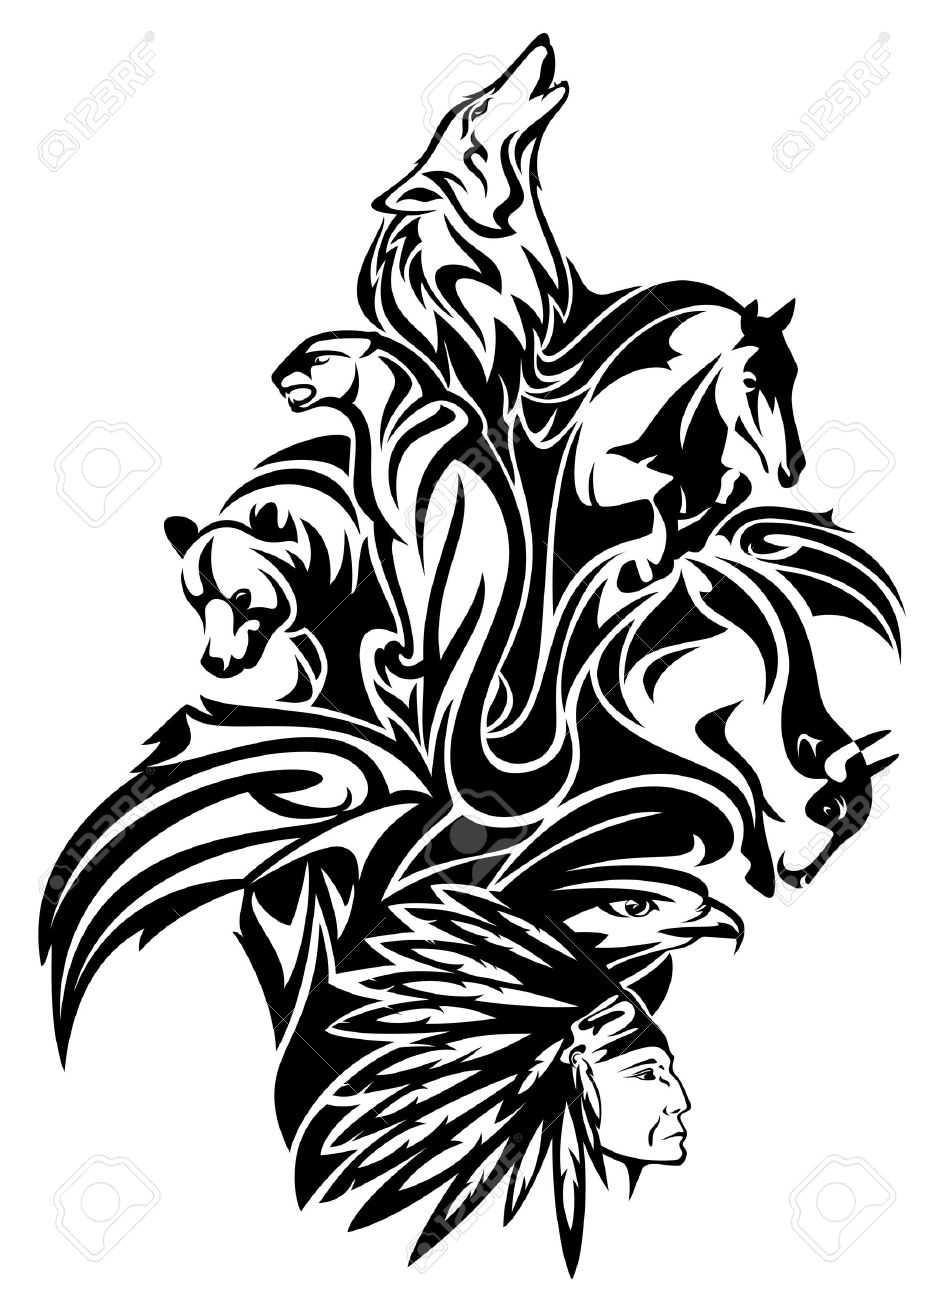 Native American chief with animal spirits design.